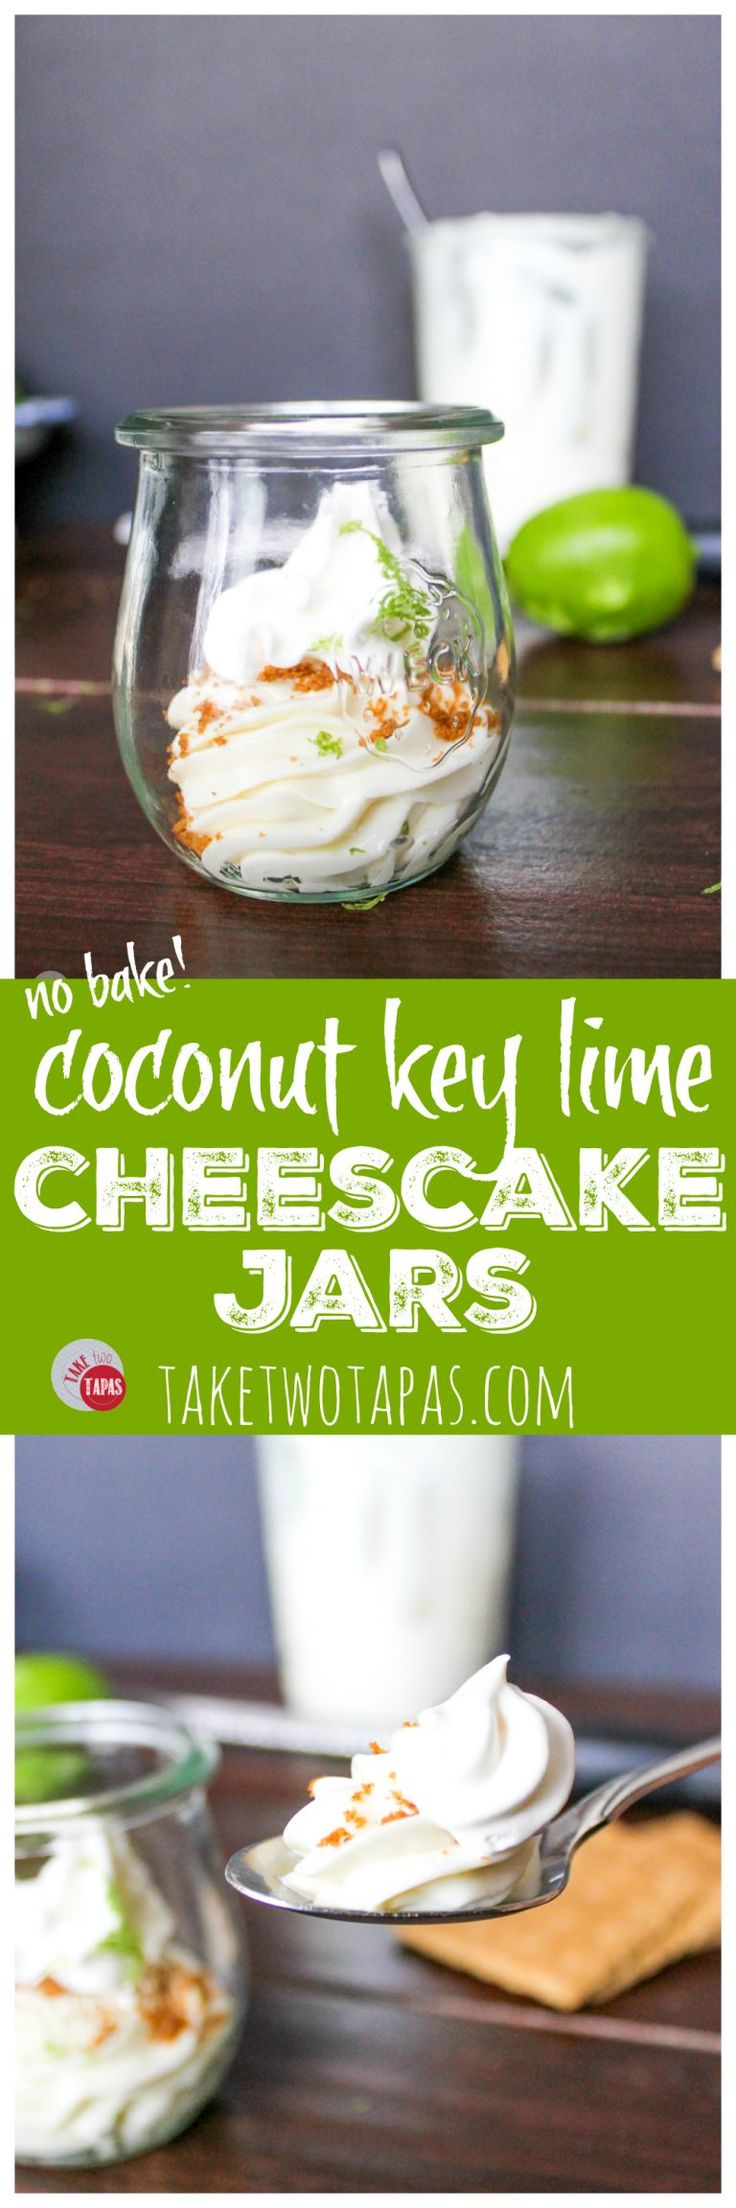 Key lime cheesecake with a hint of coconut brings me back to the tropics! Having the crust on top makes me feel like a rebel and want to eat dessert first! Key Lime Coconut Cheesecake Jars Recipe | Take Two Tapas